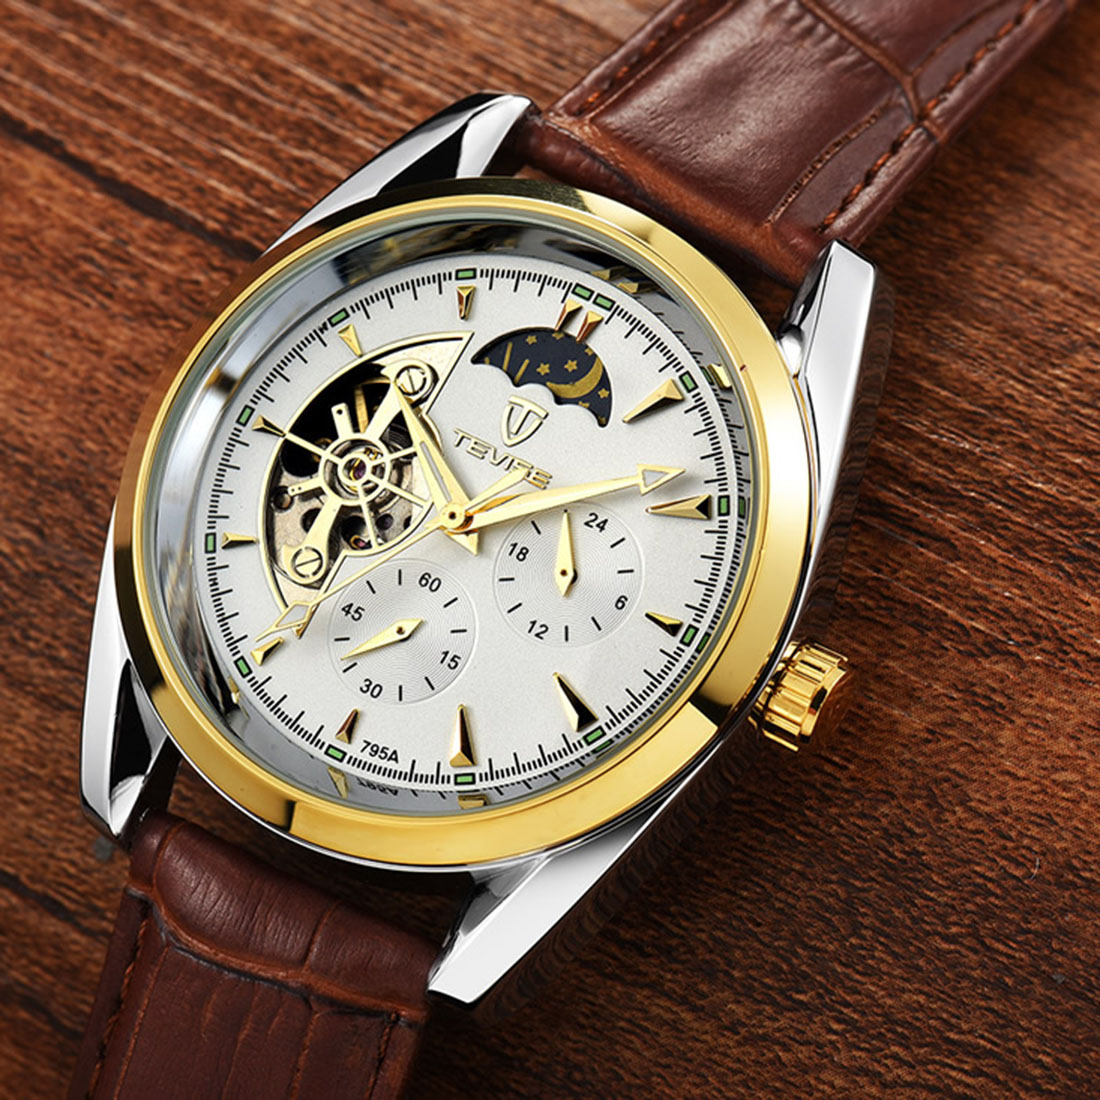 Automatic Mechanical Watches men Top Brand Luxury Montre Homme quartz wristwatch big dial leather strap sport watch male 2018 mce top brand mens watches automatic men watch luxury stainless steel wristwatches male clock montre with box 335